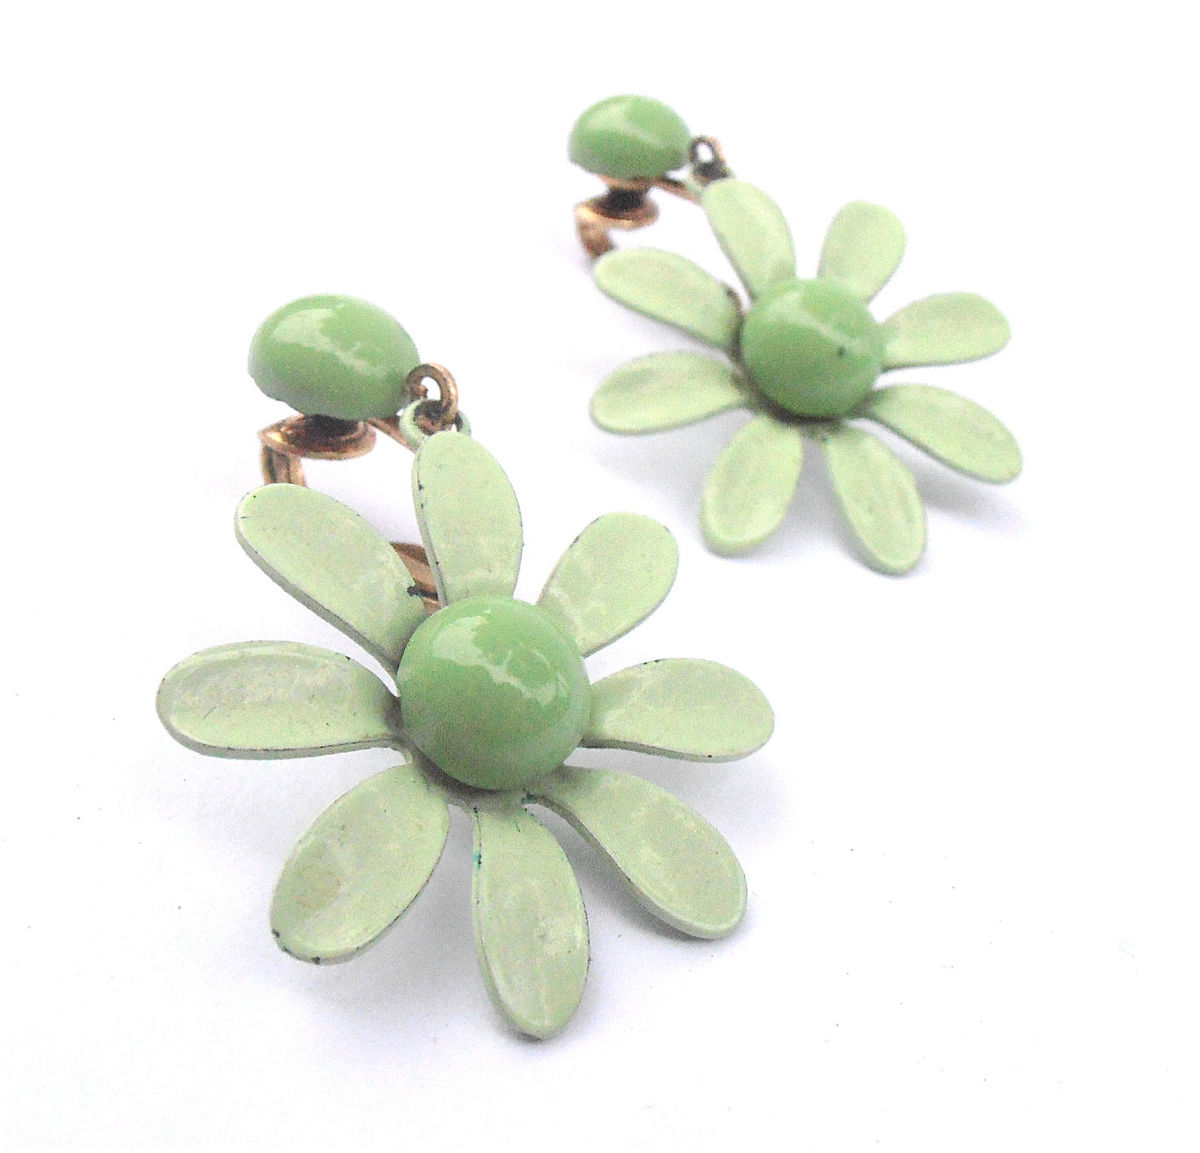 Vintage Mint Green Earrings Light Green Earrings Flower Power Earrings Daisy Earrings Green Retro Earrings Green Daisy Dangling Earrings - product images  of